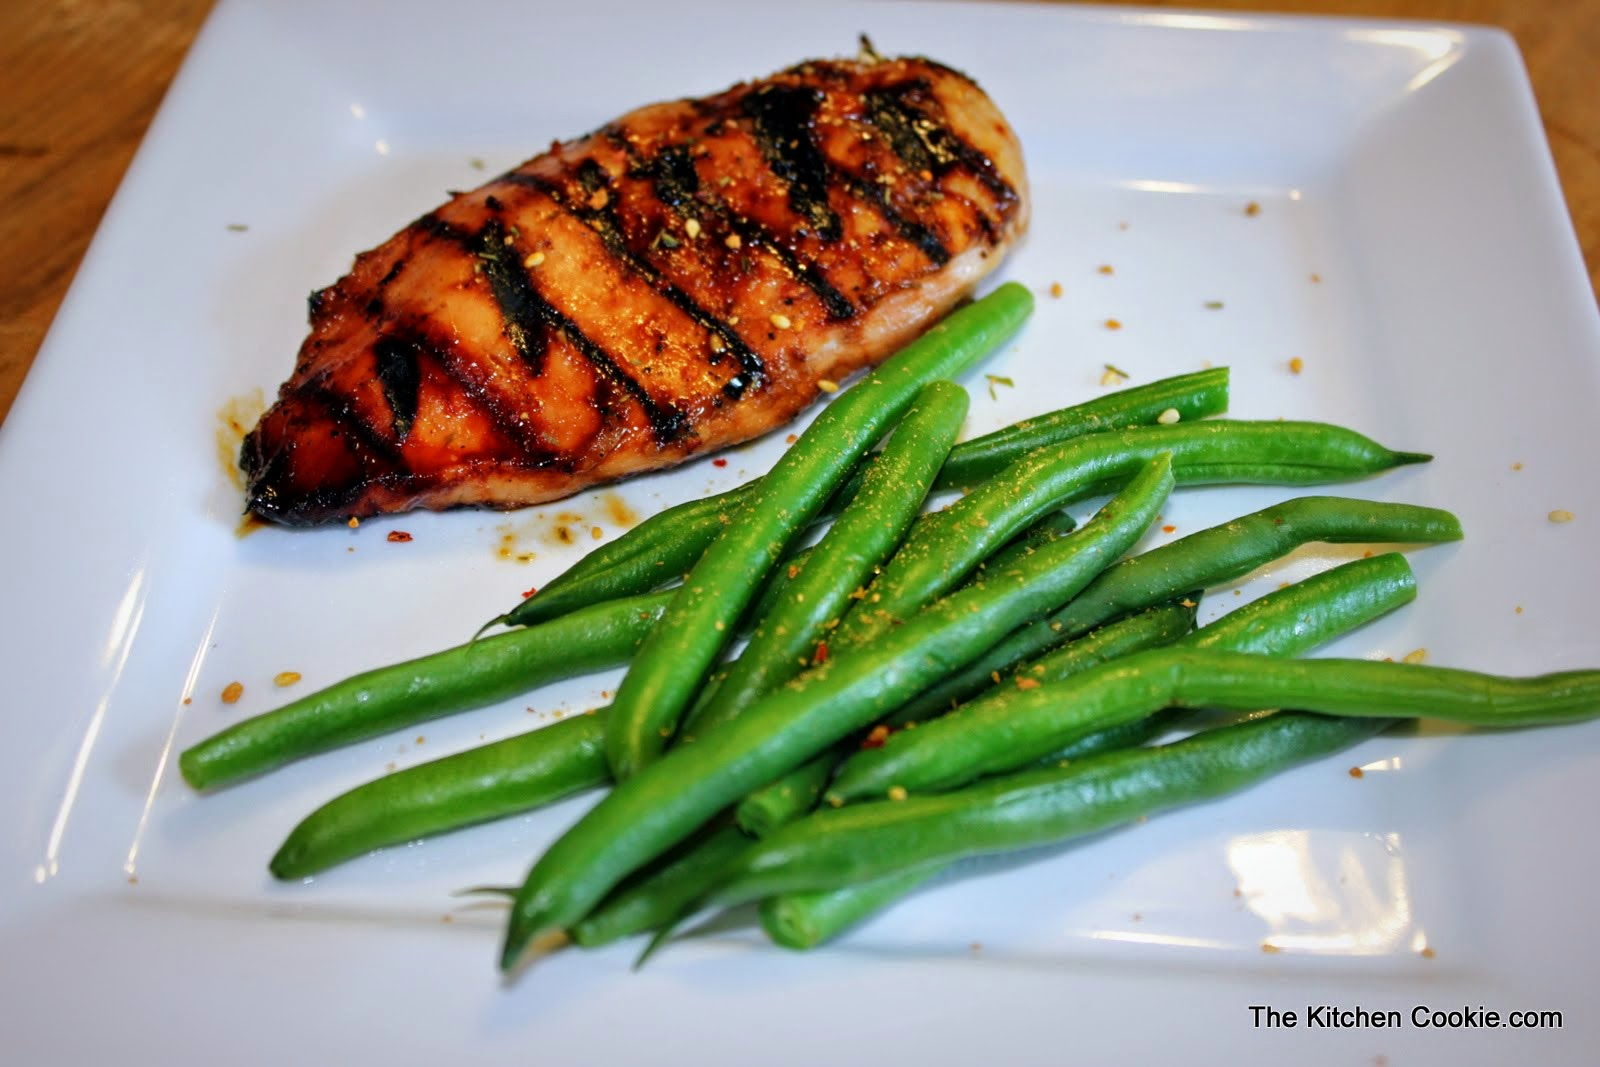 TheKitchenCookie: Grilled Asian Chicken Breast